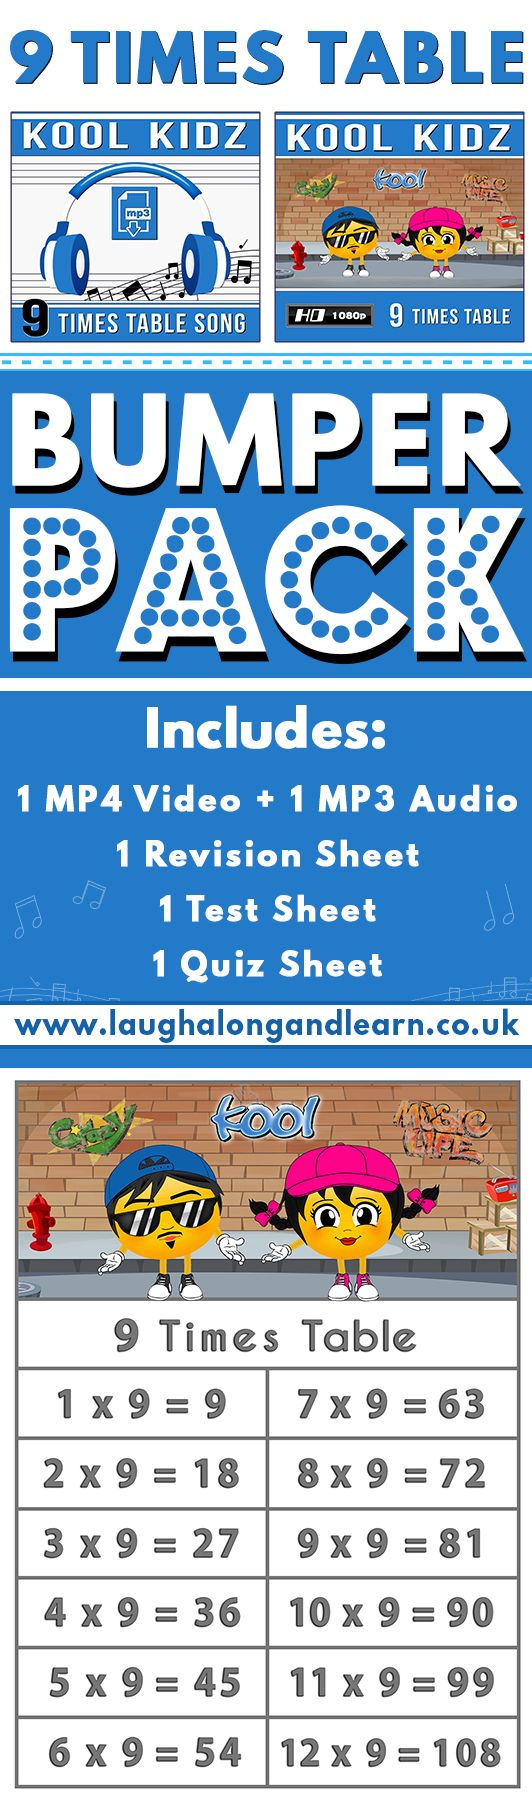 Learn Your 9 Times Table Quickly With Our Kool Kidz